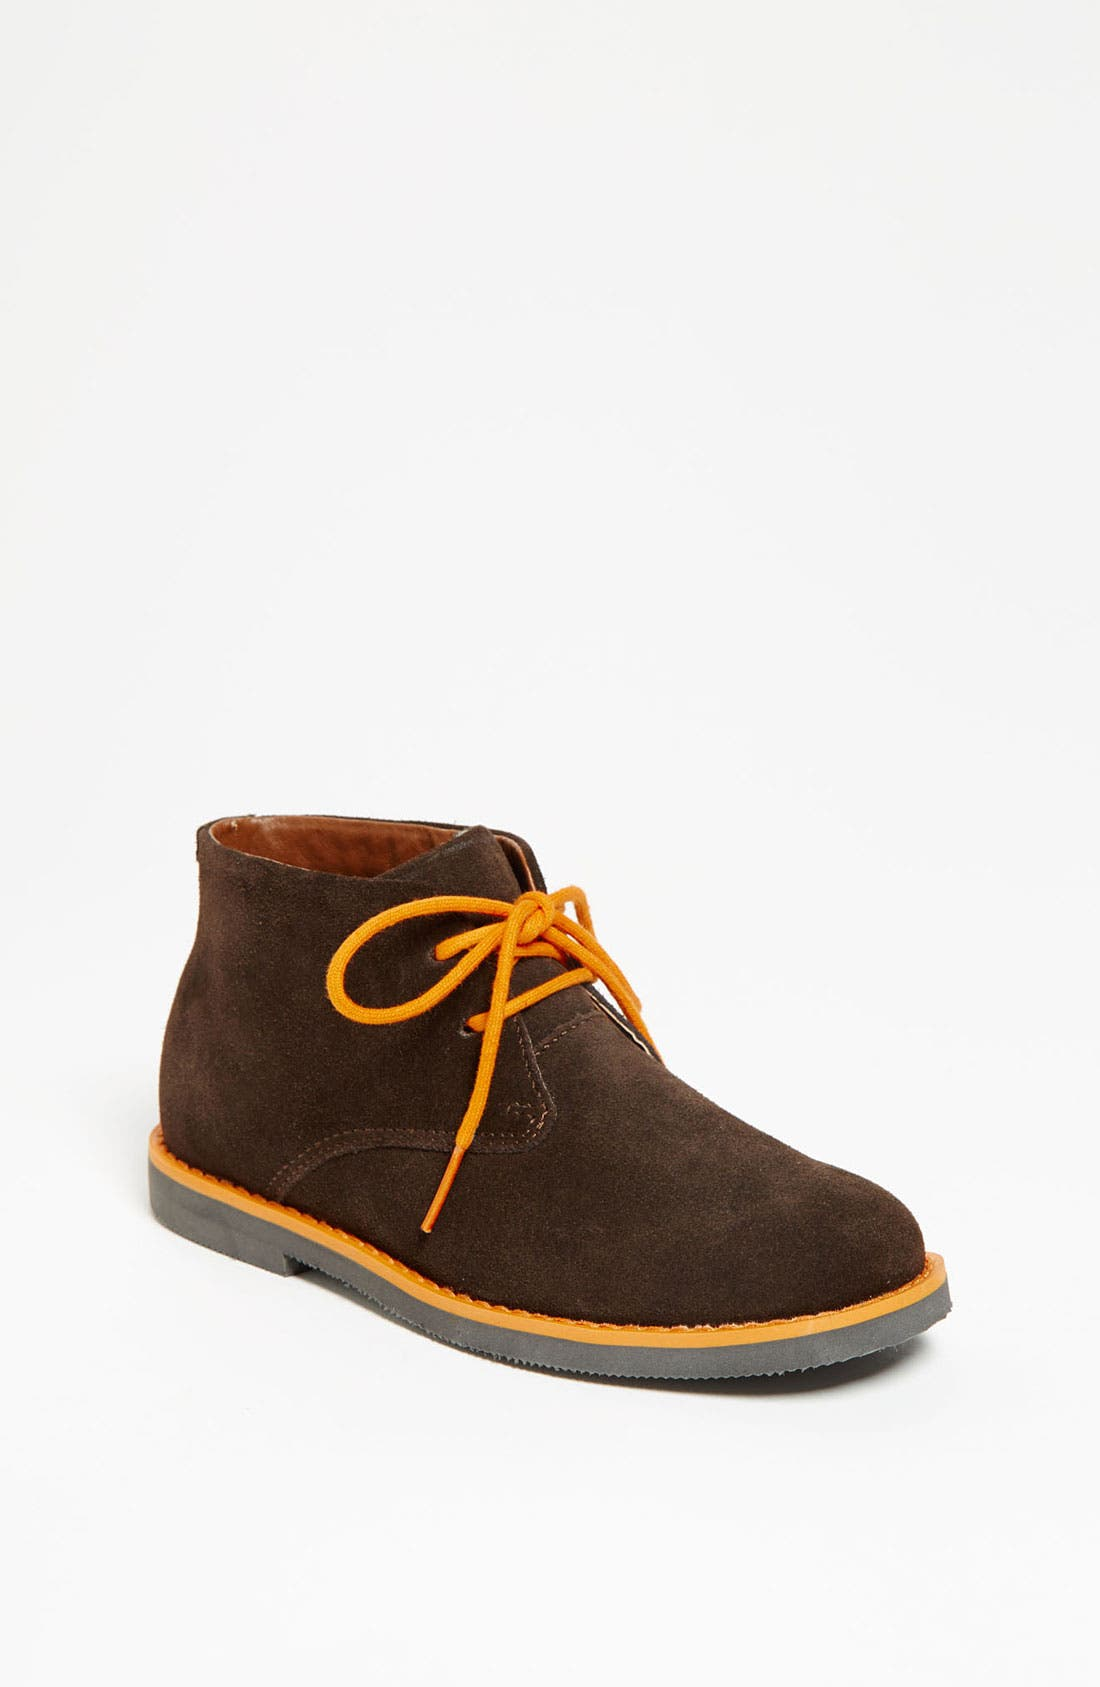 Main Image - Florsheim 'Doon' Chukka Boot (Little Kid & Big Kid)